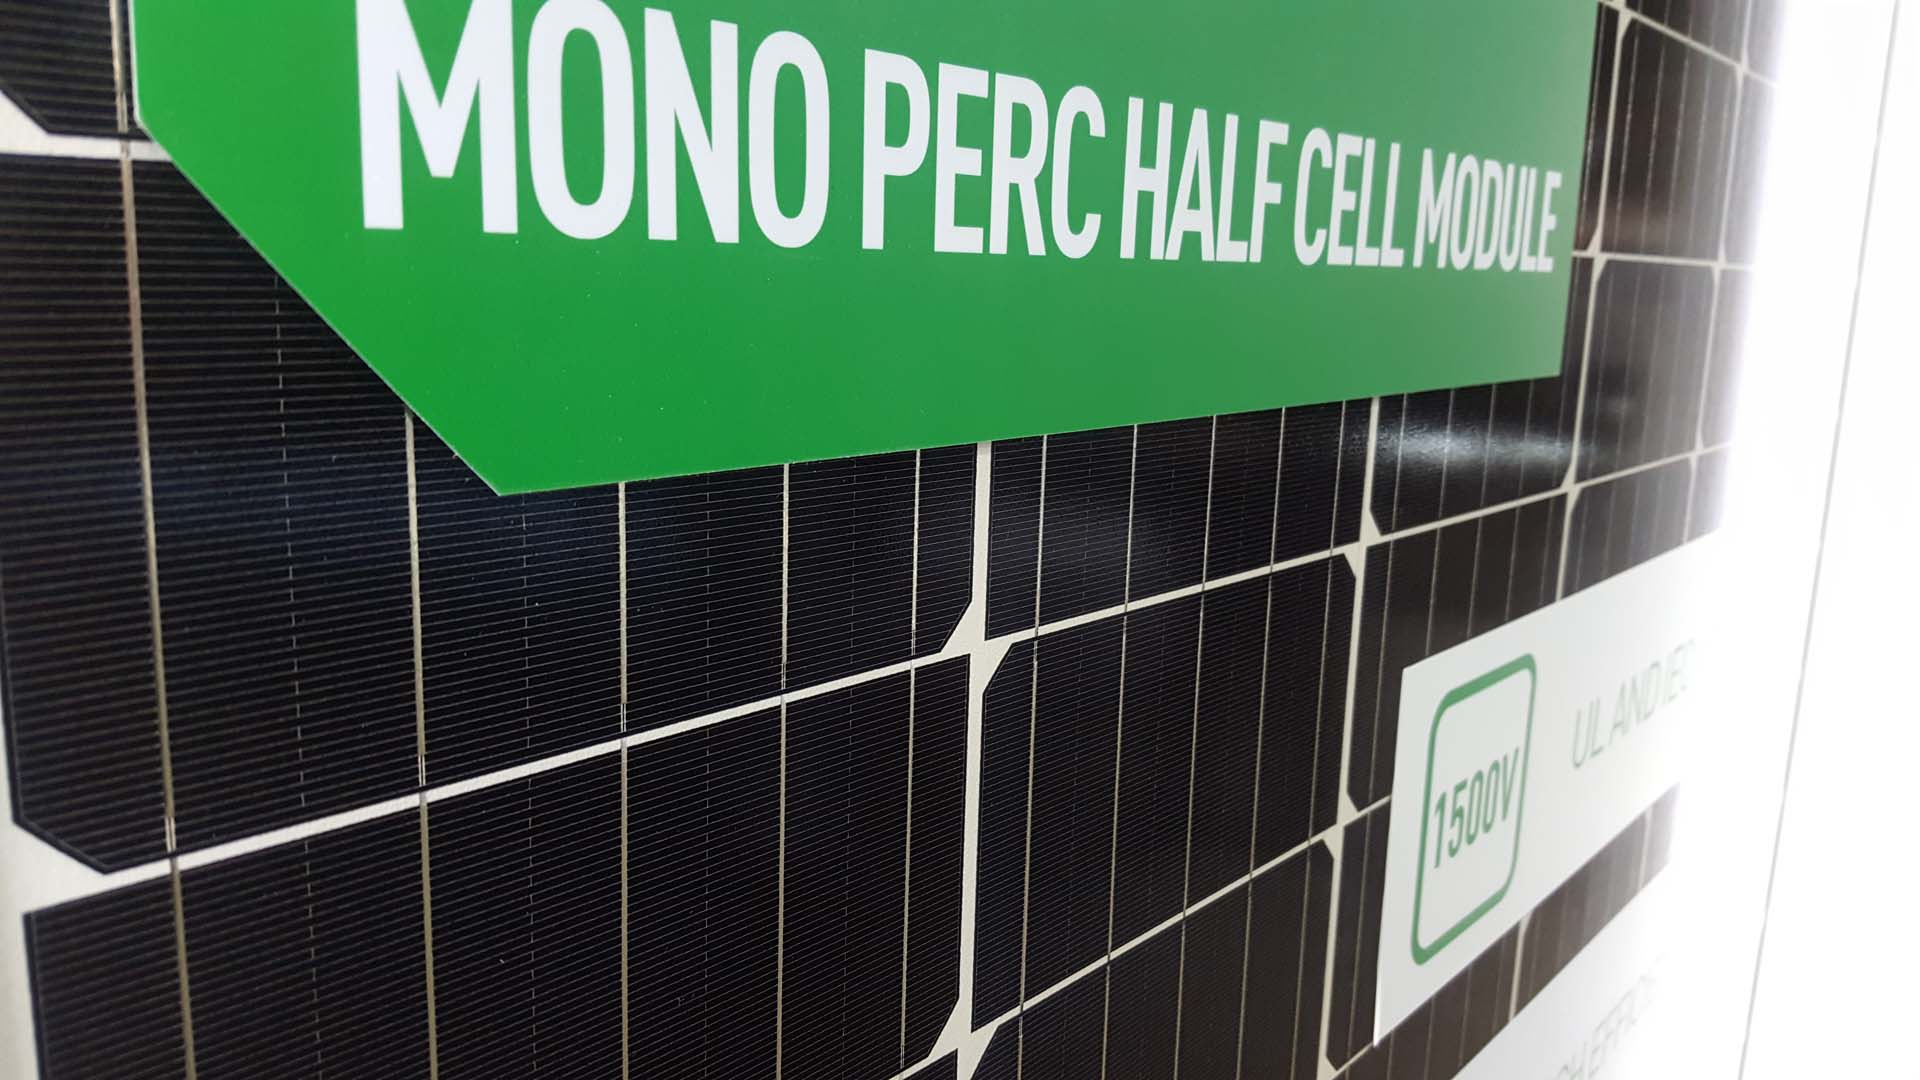 JinkoSolar has beaten its own monocrystalline passivated emitter rear contact (PERC) cell efficiency record notching up a conversion rate of 23.45%.